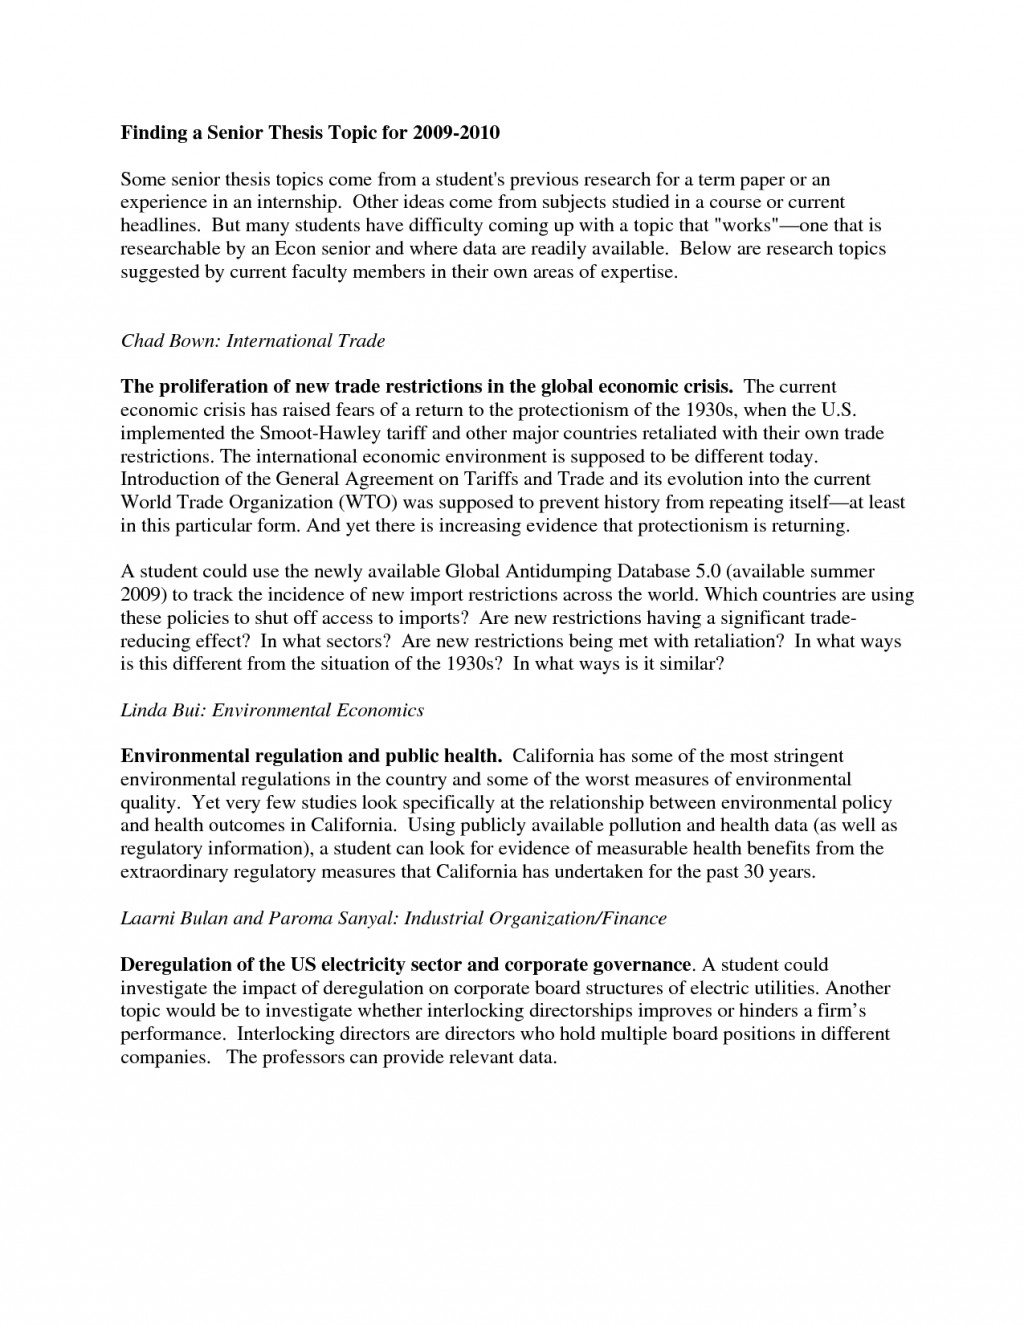 007 Research Paper 1cct5dxadq Great Topics For Astounding College History Students Level Large